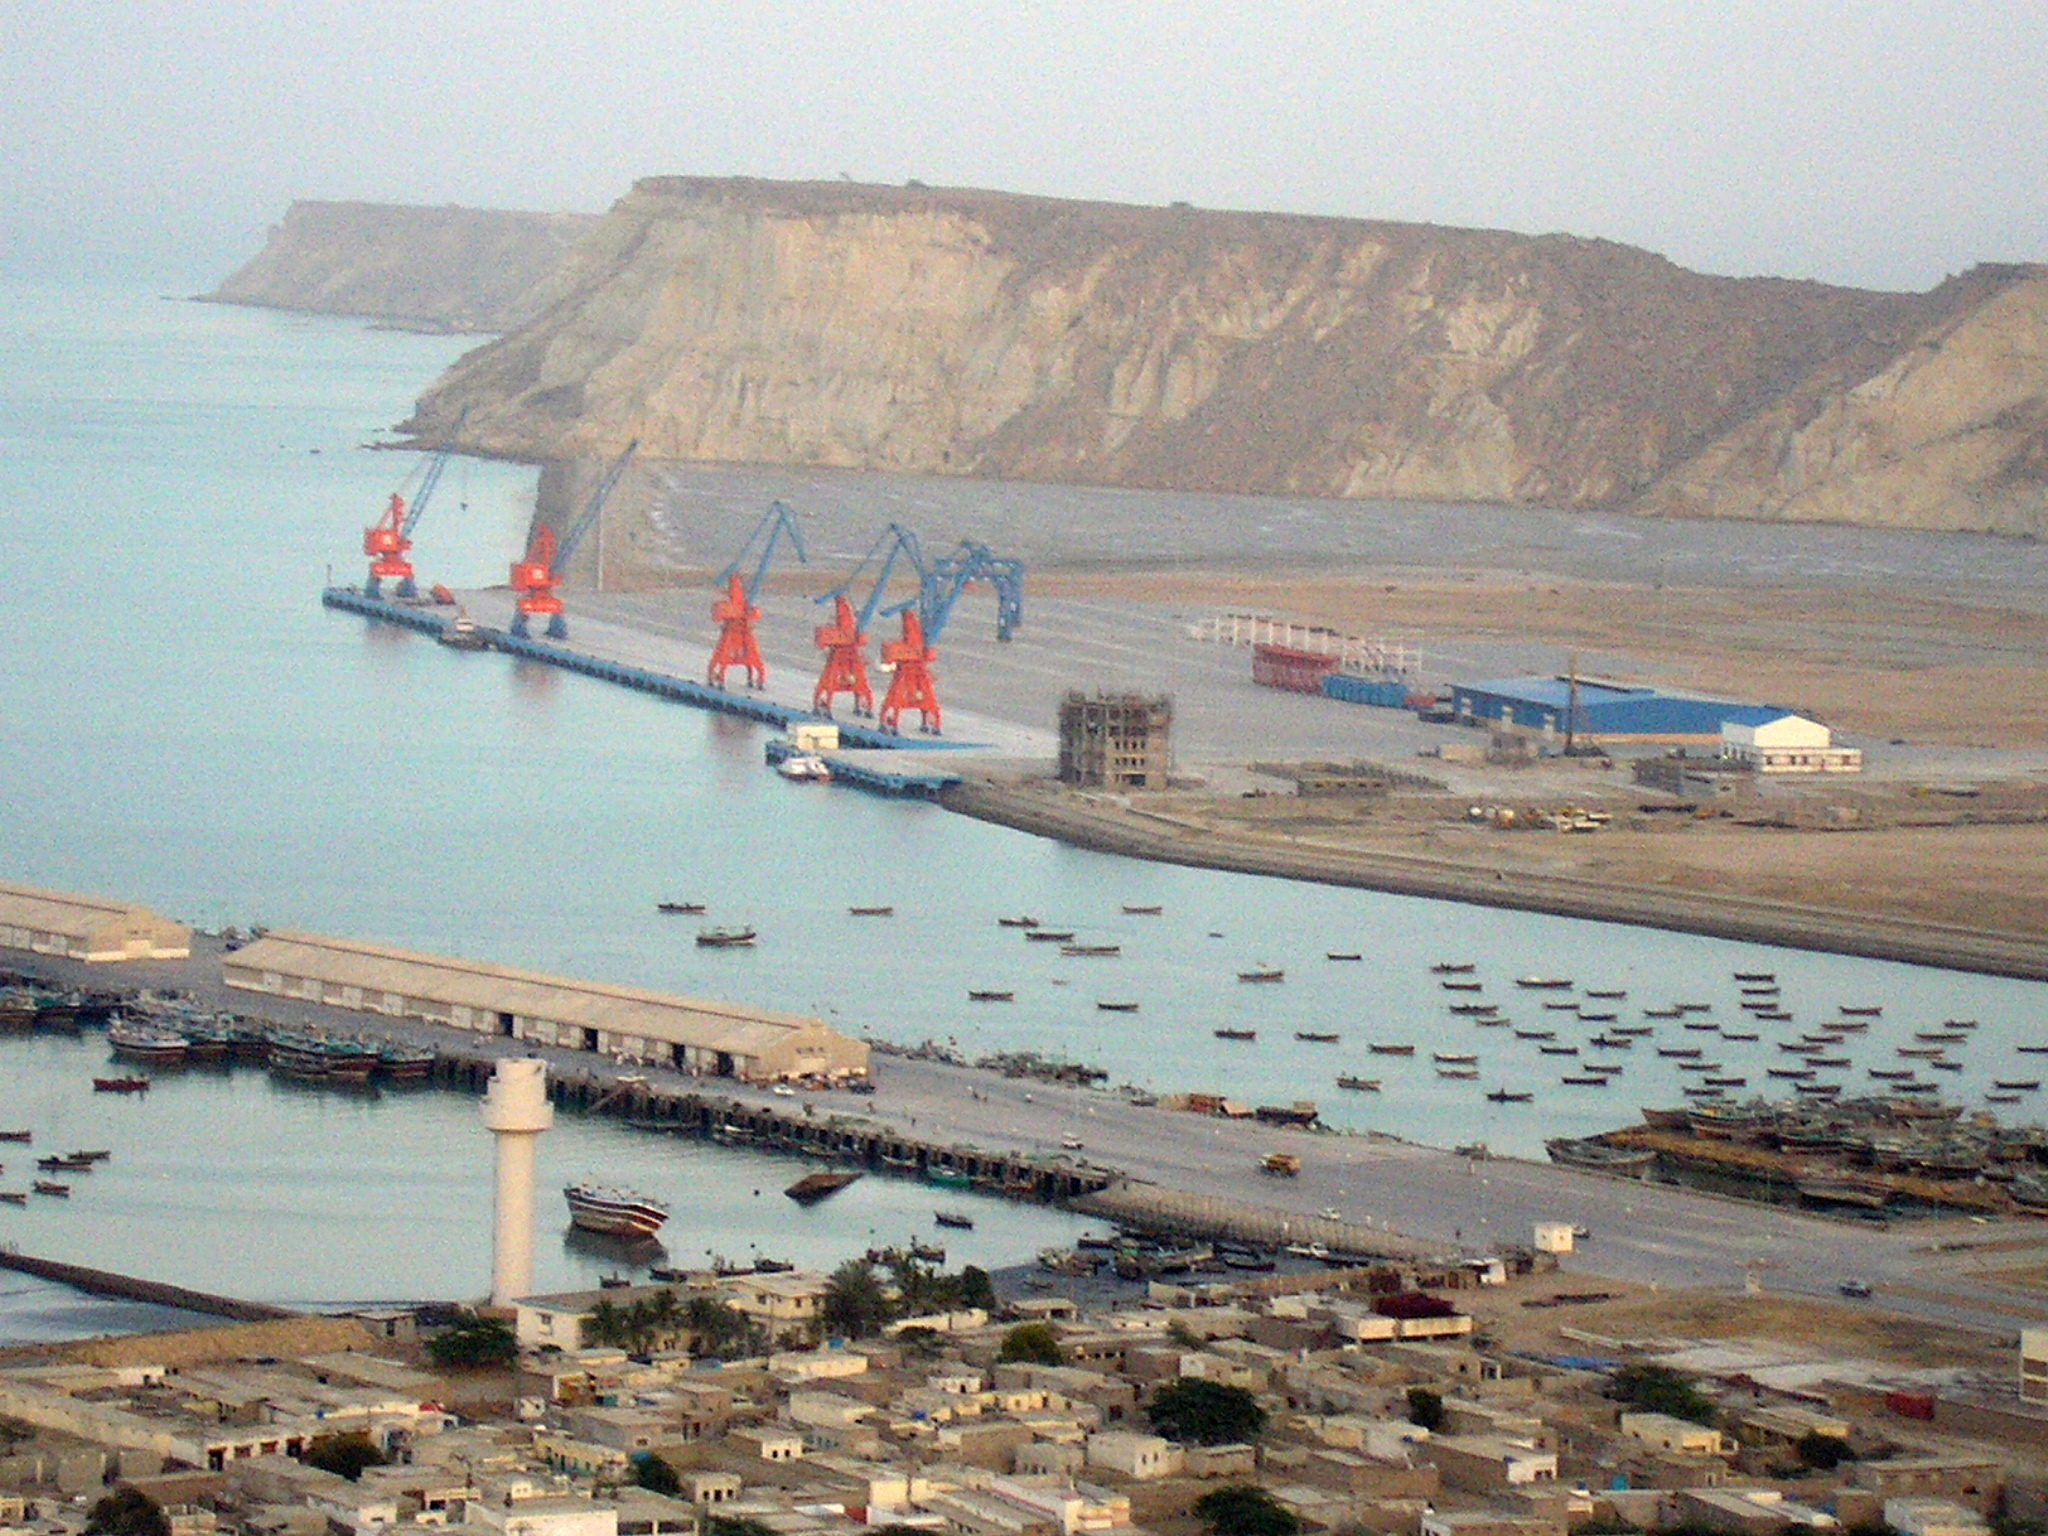 https://upload.wikimedia.org/wikipedia/commons/0/0e/Gwadar_Port.jpg